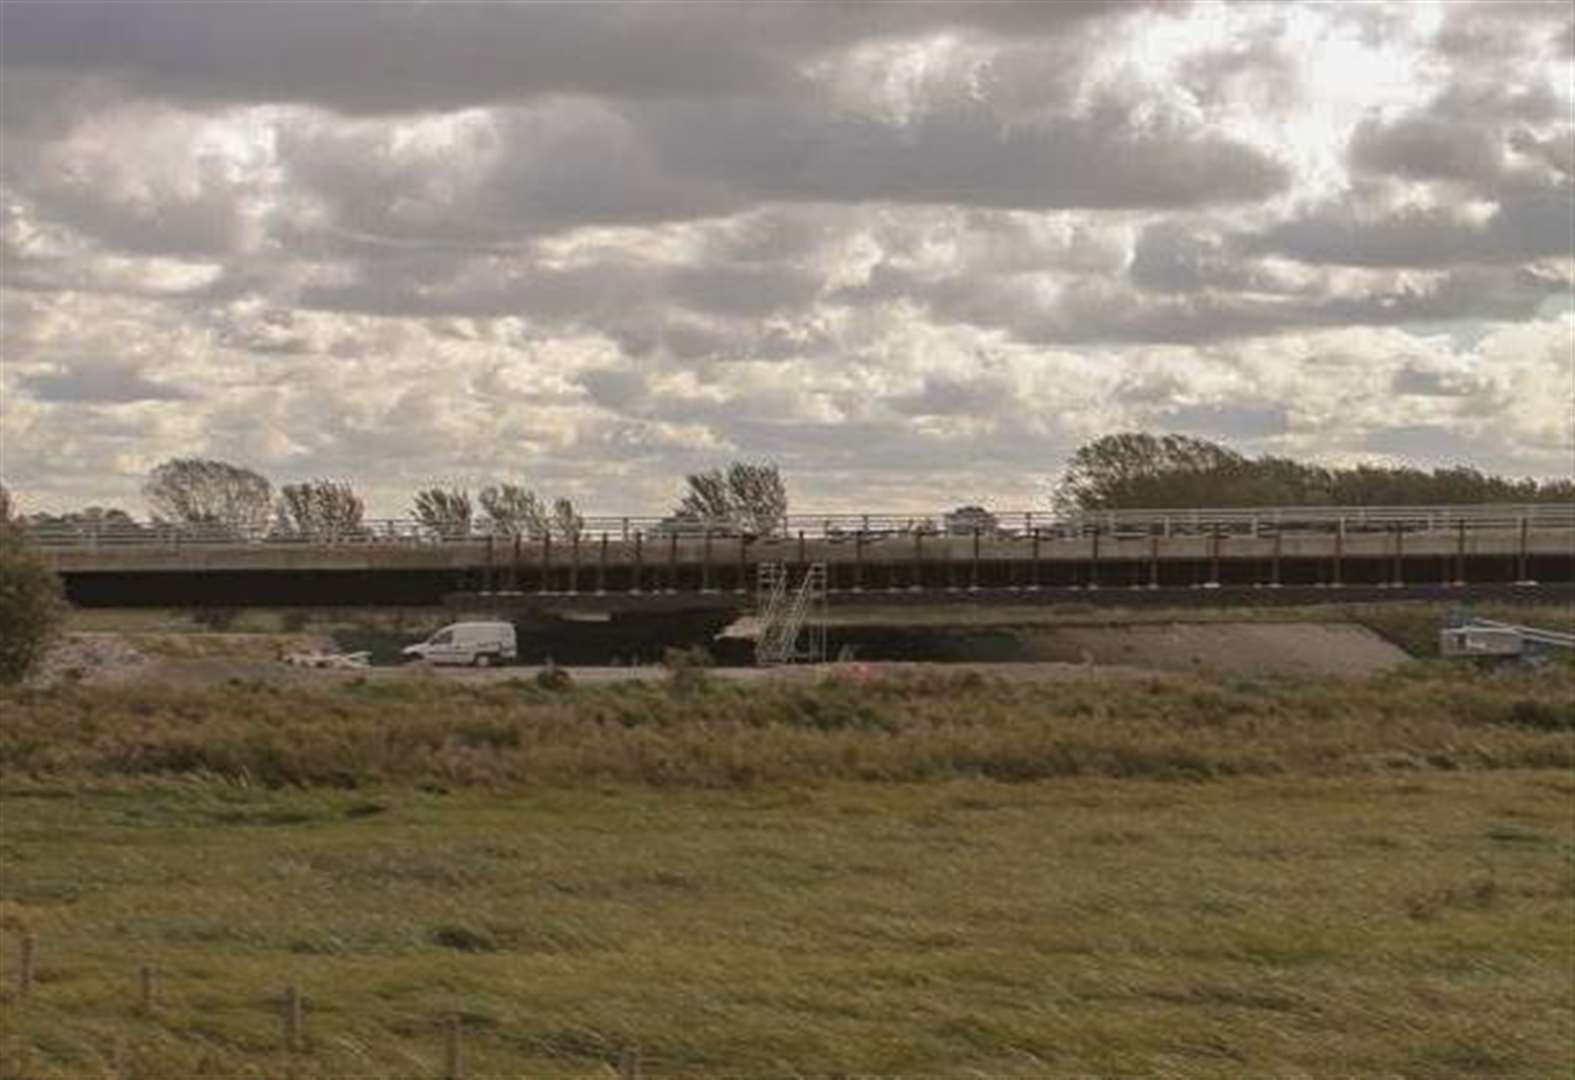 Ely Southern Bypass is set to open at the end of October making life easier for local commuters